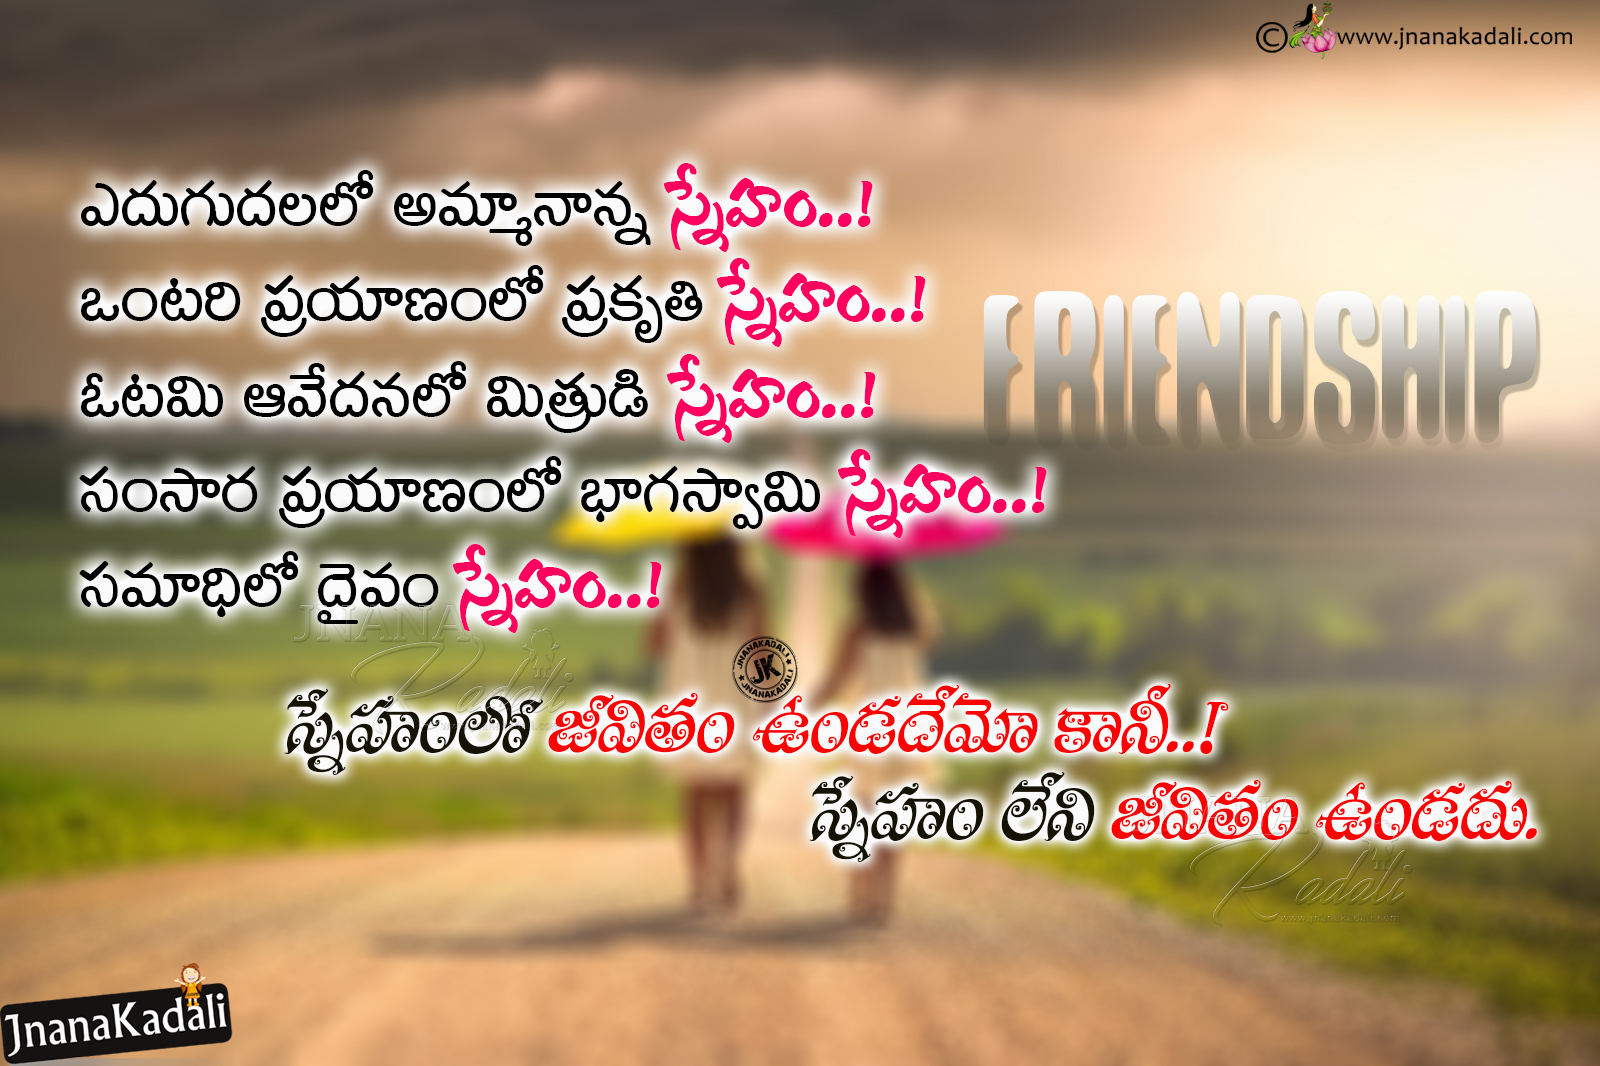 Touching Quotes About Friendship Alluring Latest Best Telugu Friendship Heart Touching Quotes With Cute